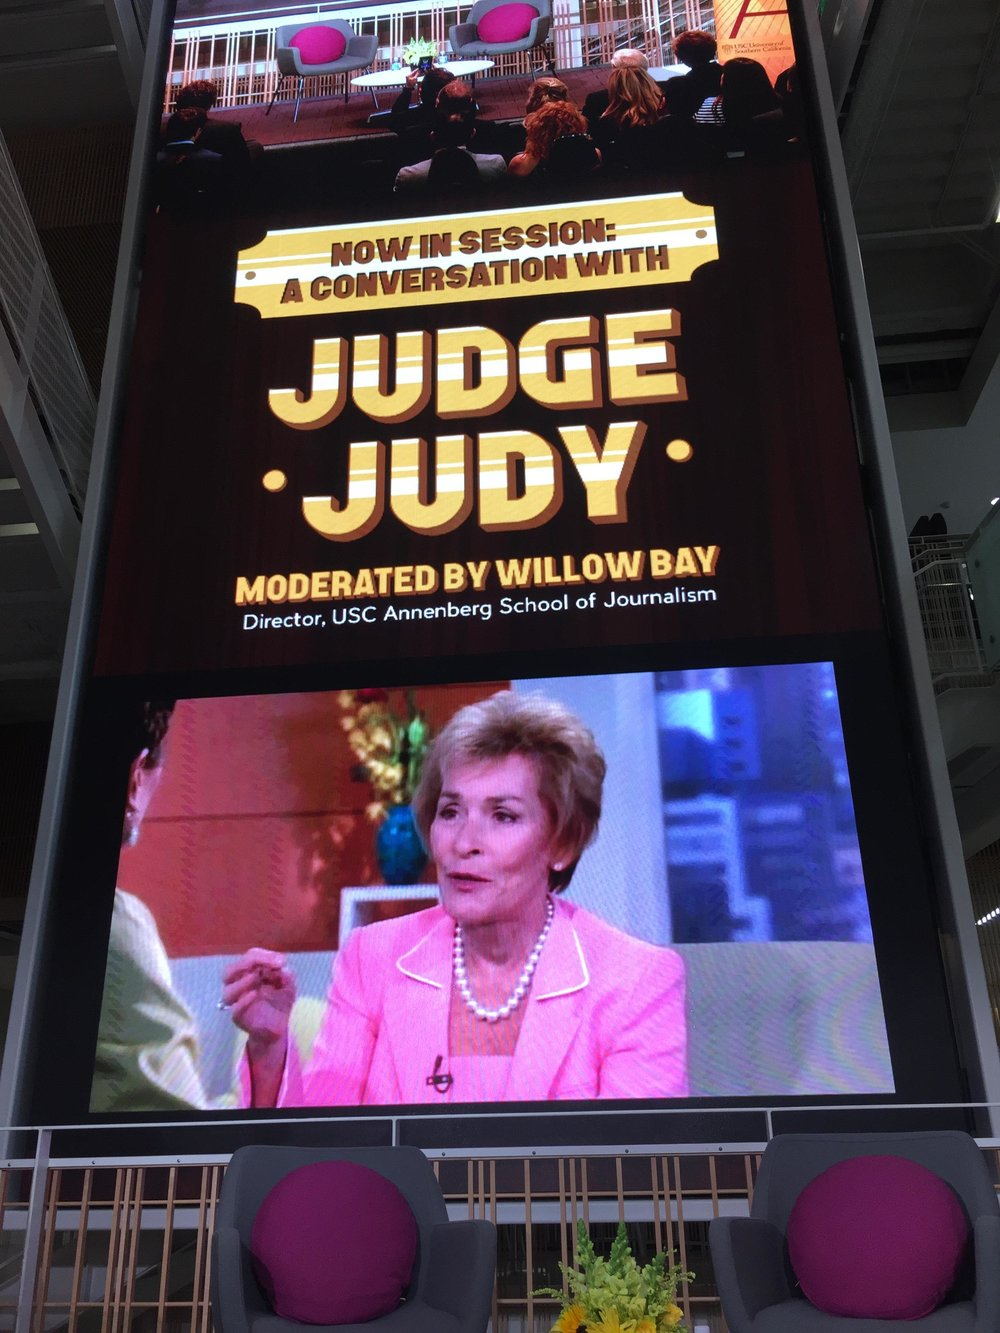 Judge Judy at USC Annenberg School of Journalism